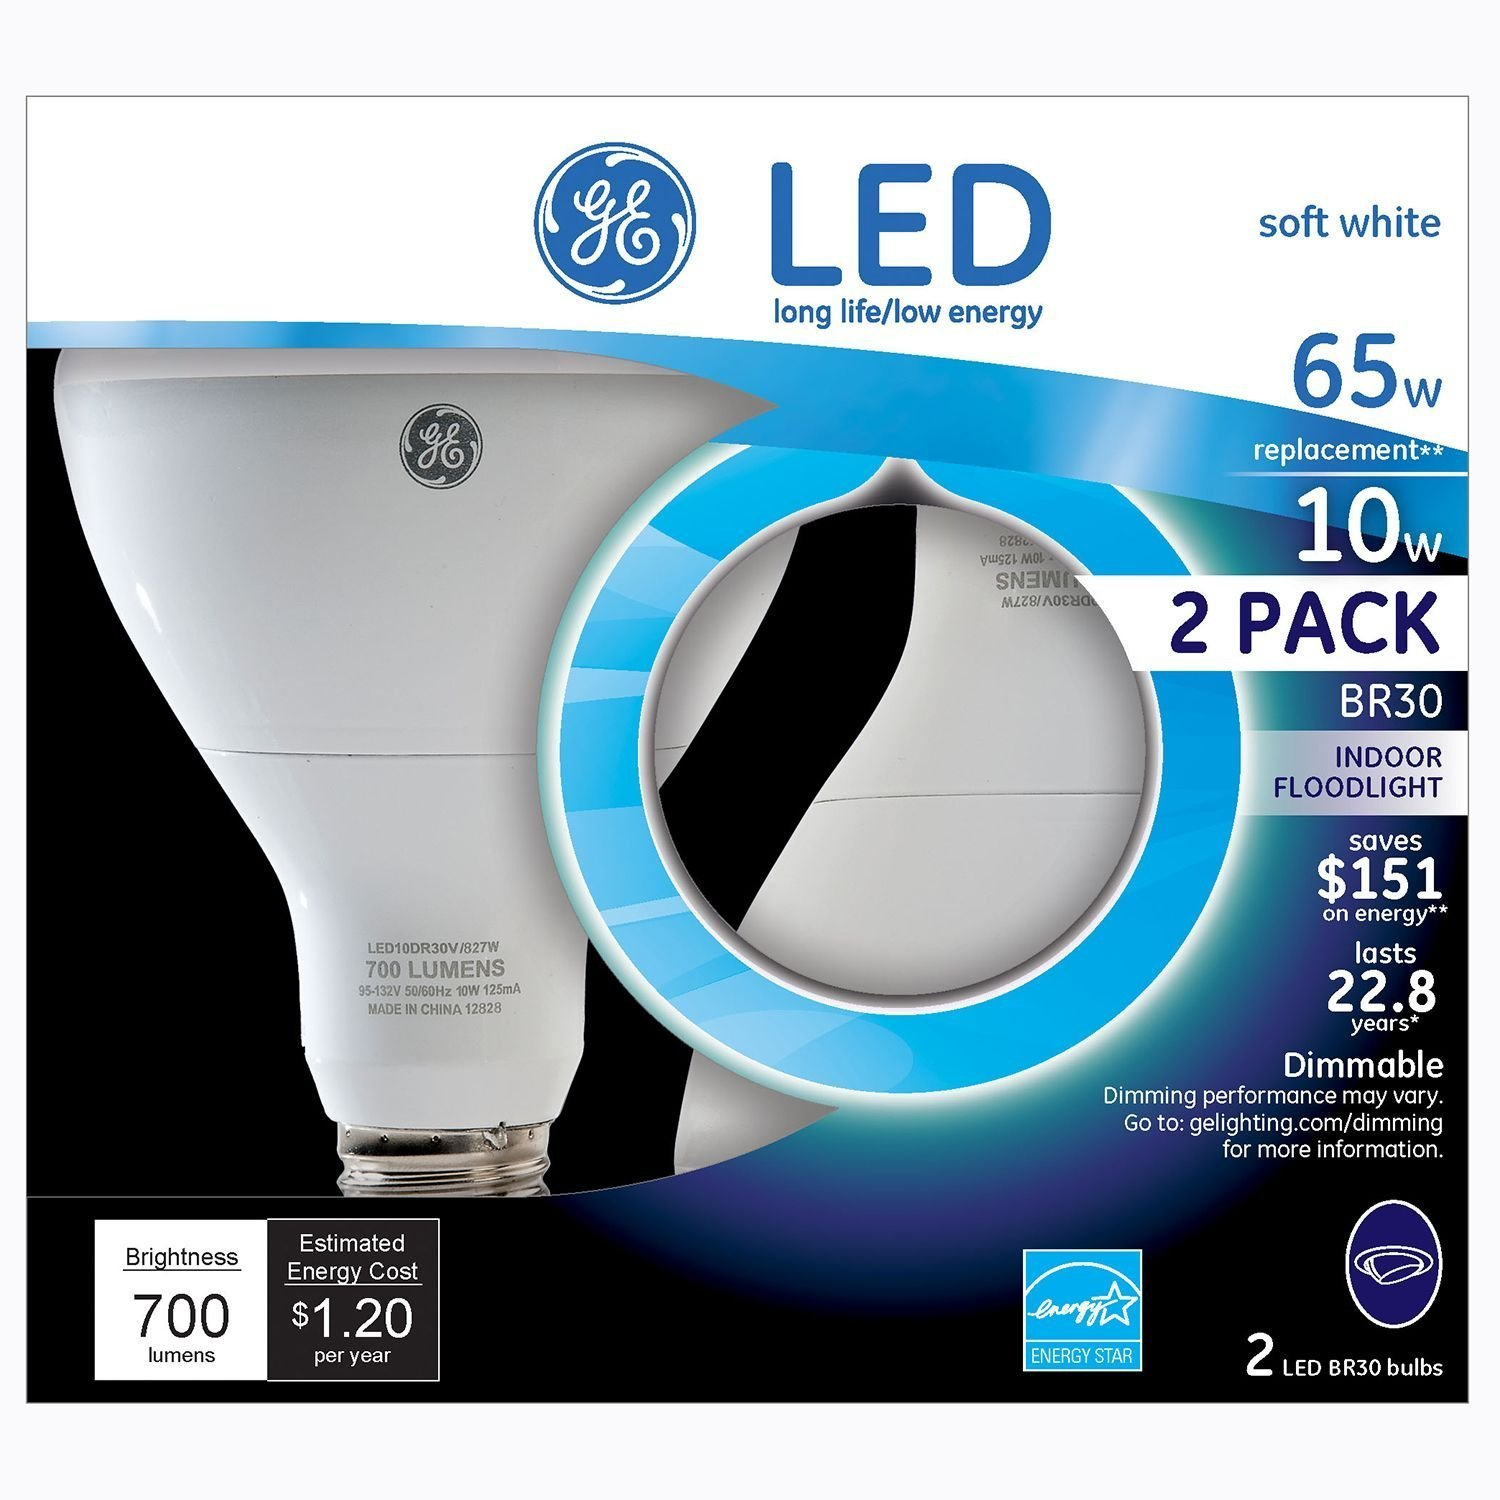 GE LED BR30 Indoor Floodlight Bulb (8 Pack) - Energy Star Certified